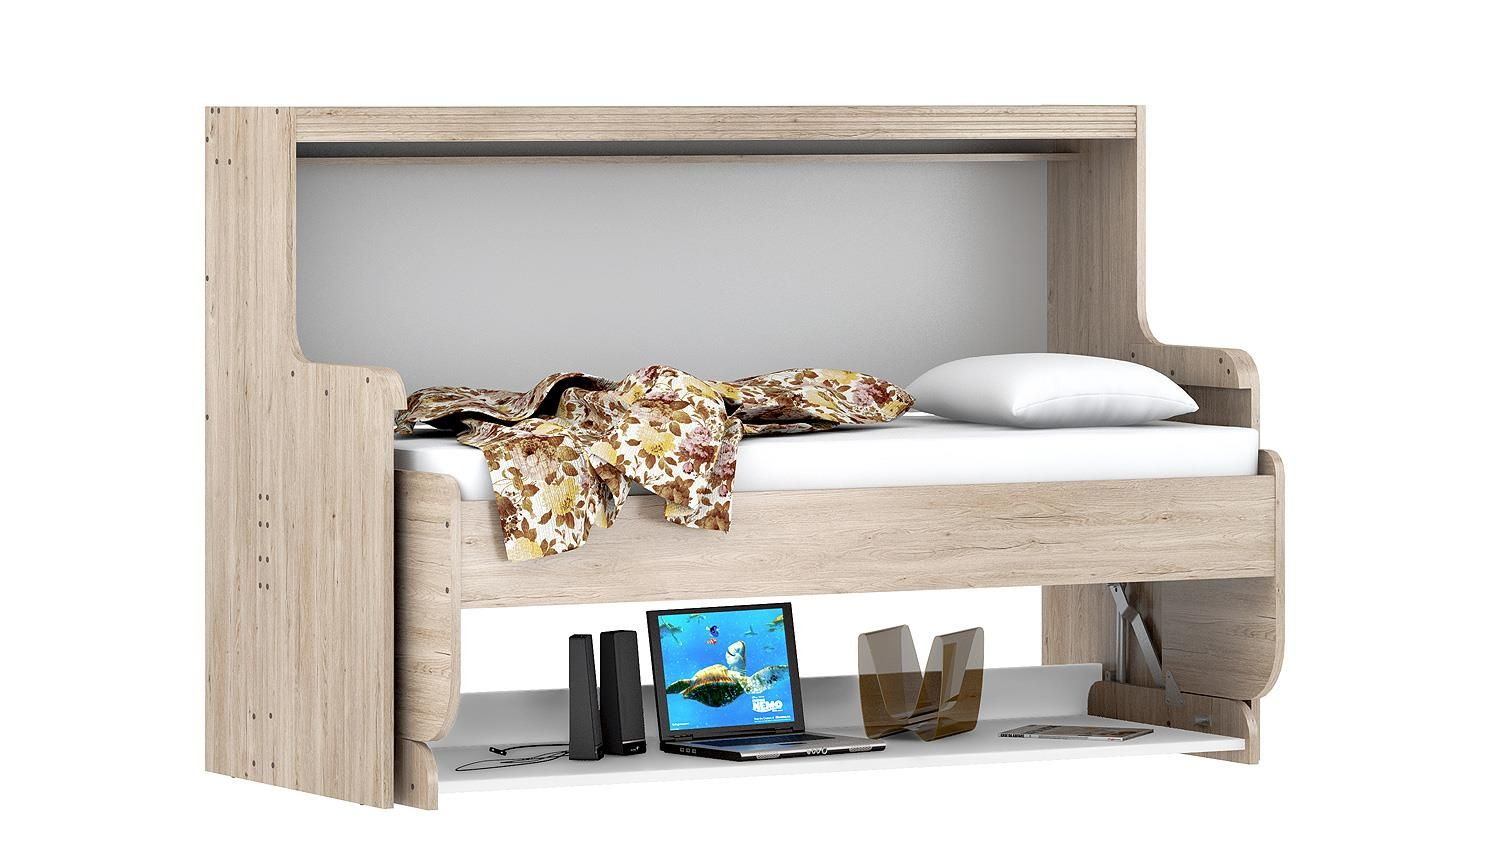 funktionsbett dakota klappbett schreibtisch eiche san remo wei 90x200 einrichtungsideen. Black Bedroom Furniture Sets. Home Design Ideas